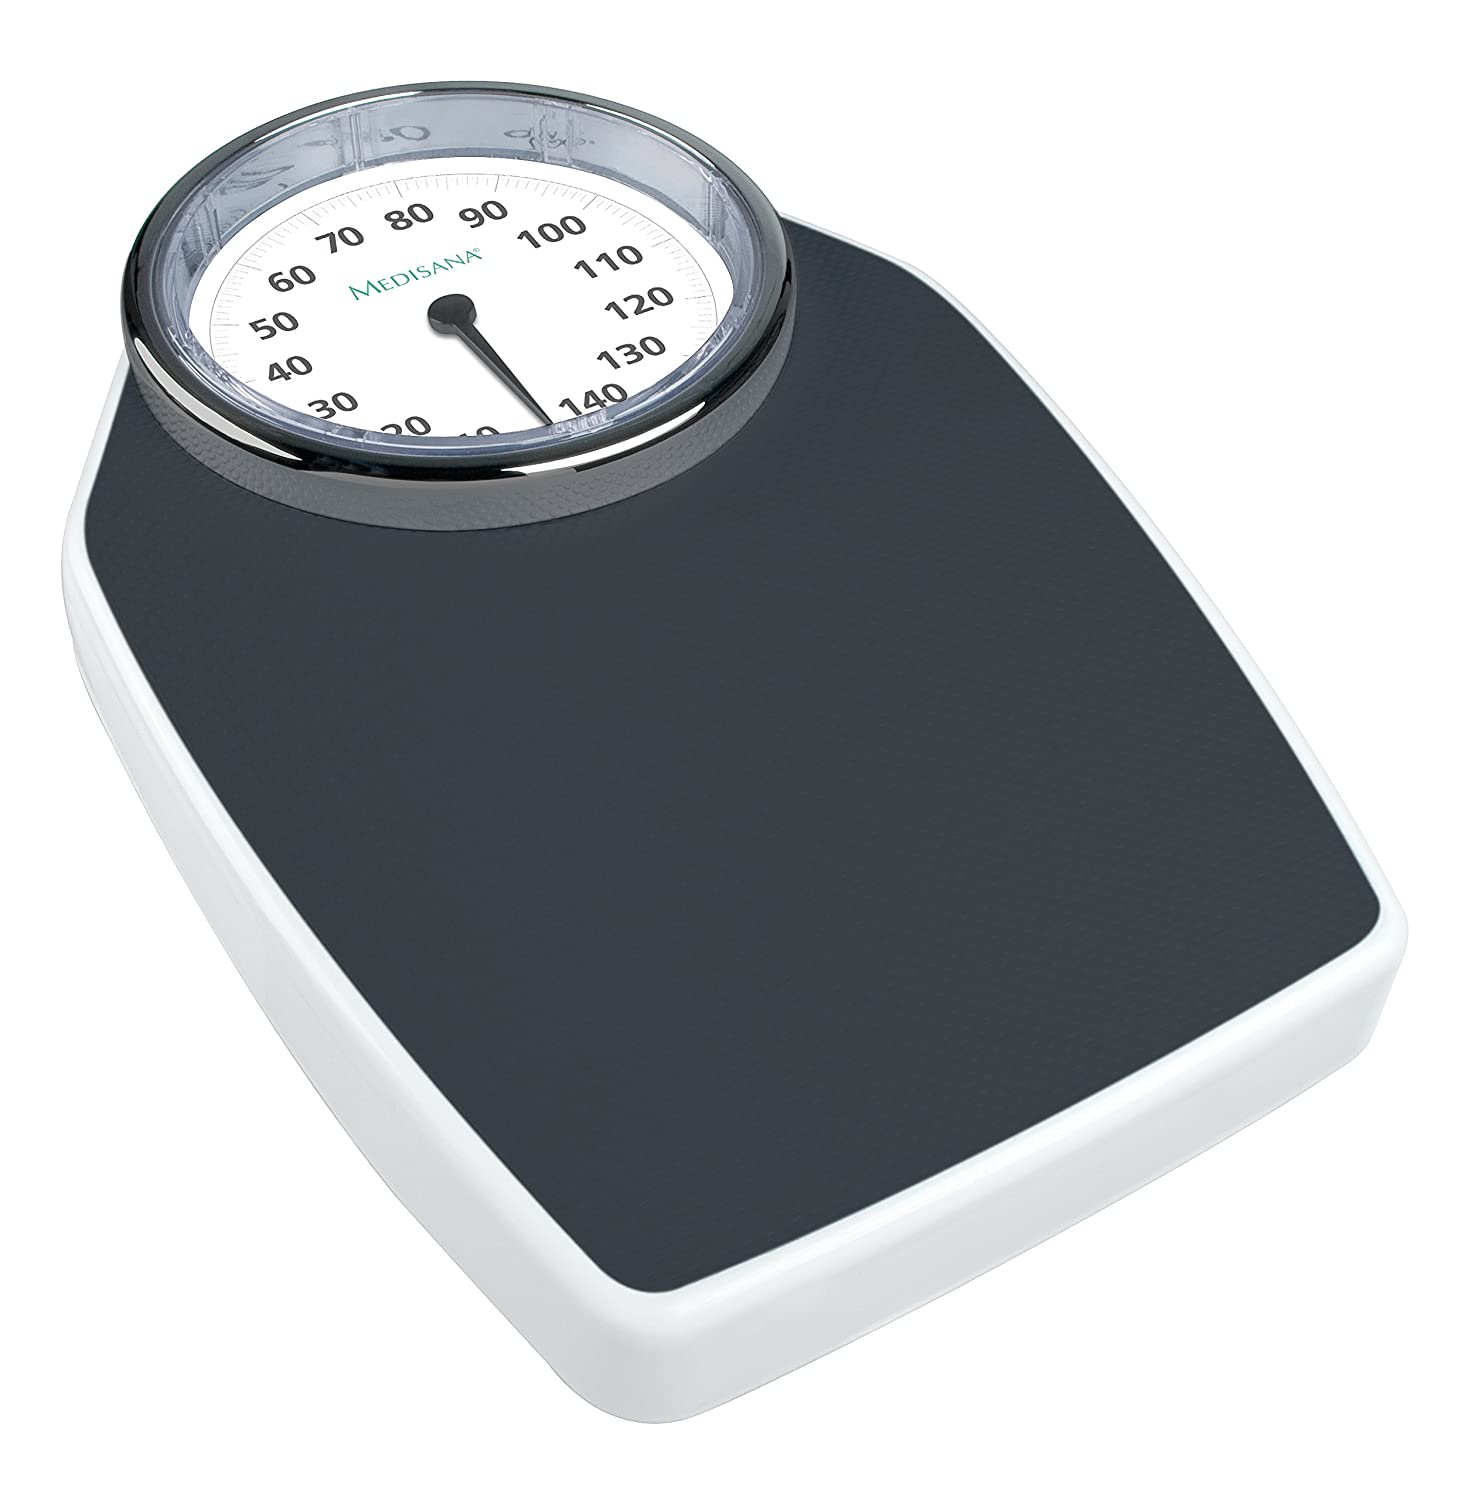 Medisana Psd 40461 Mechanical Bathroom Scale Electronic